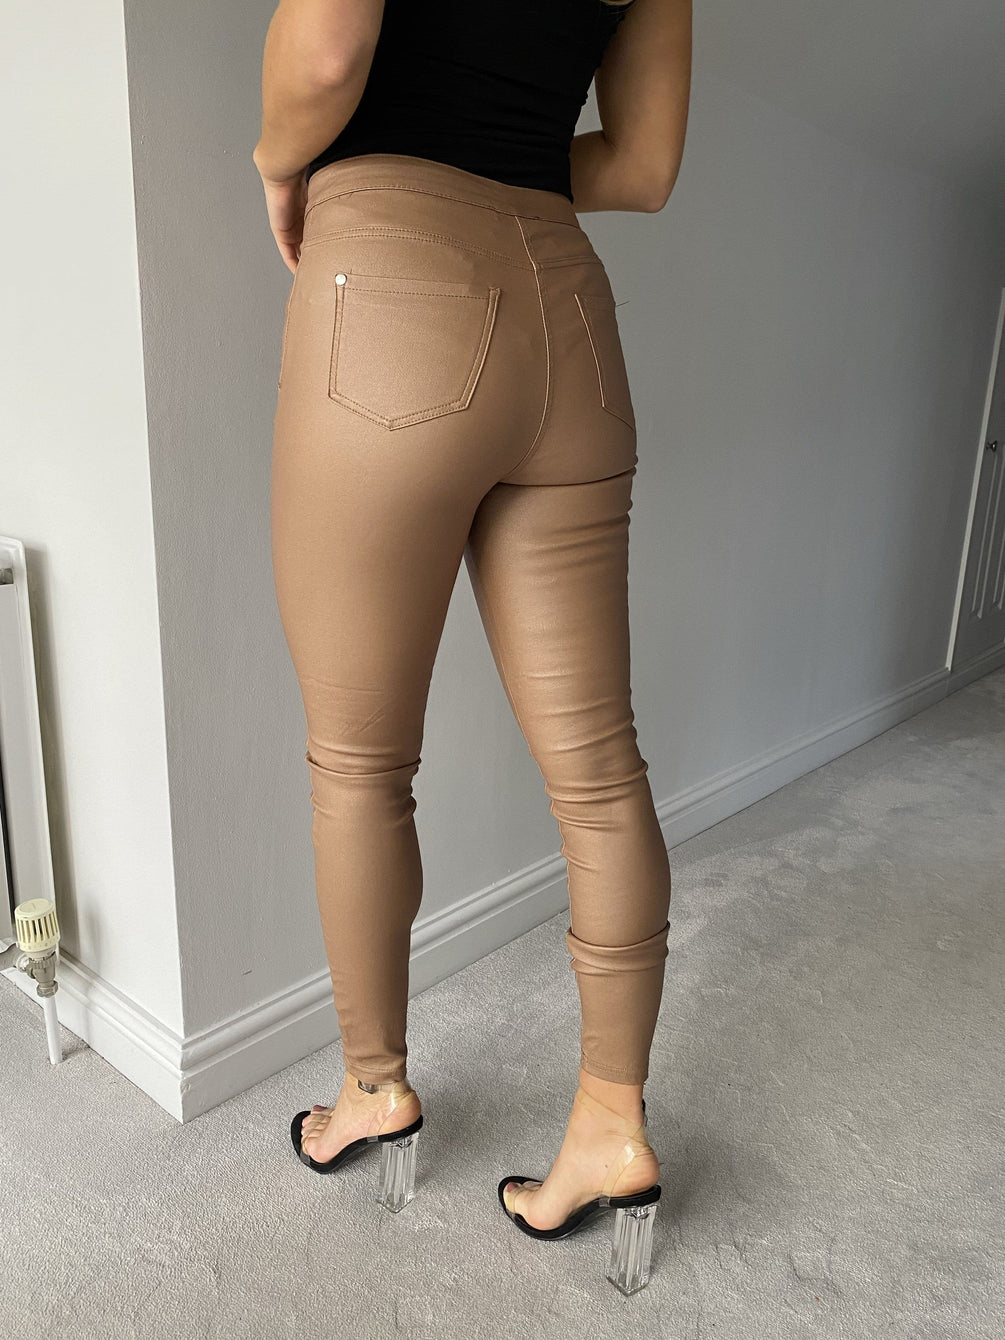 Greta Coated High Waist Jeggings in Camel Jeggins Miss Diva